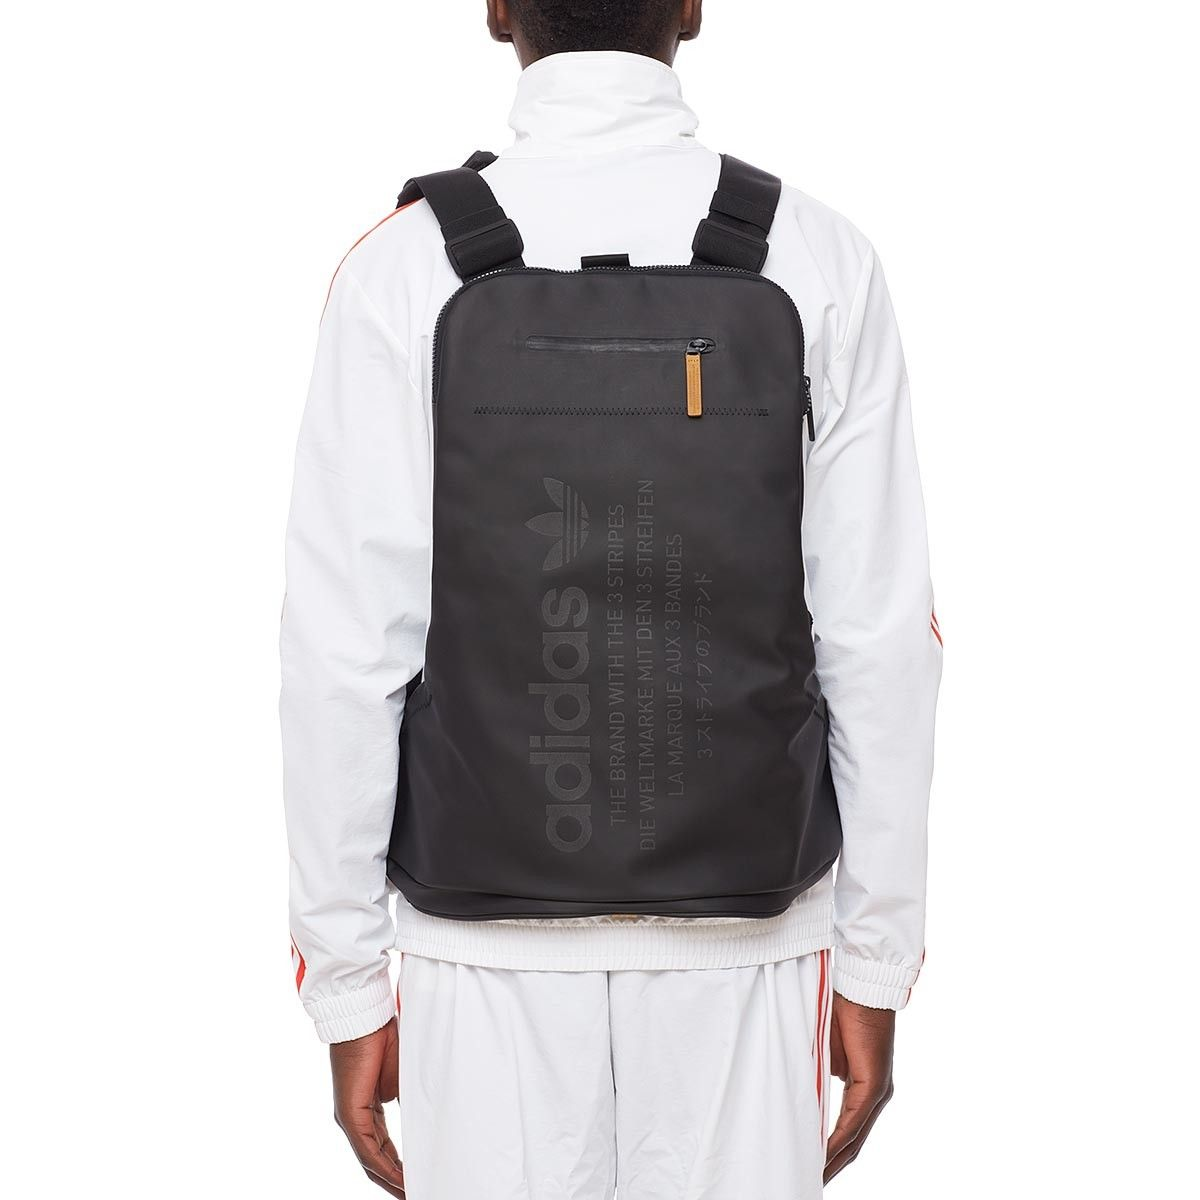 e9cbcb7ed421 NMD running backpack from the S S2017 Adidas Originals collection in black